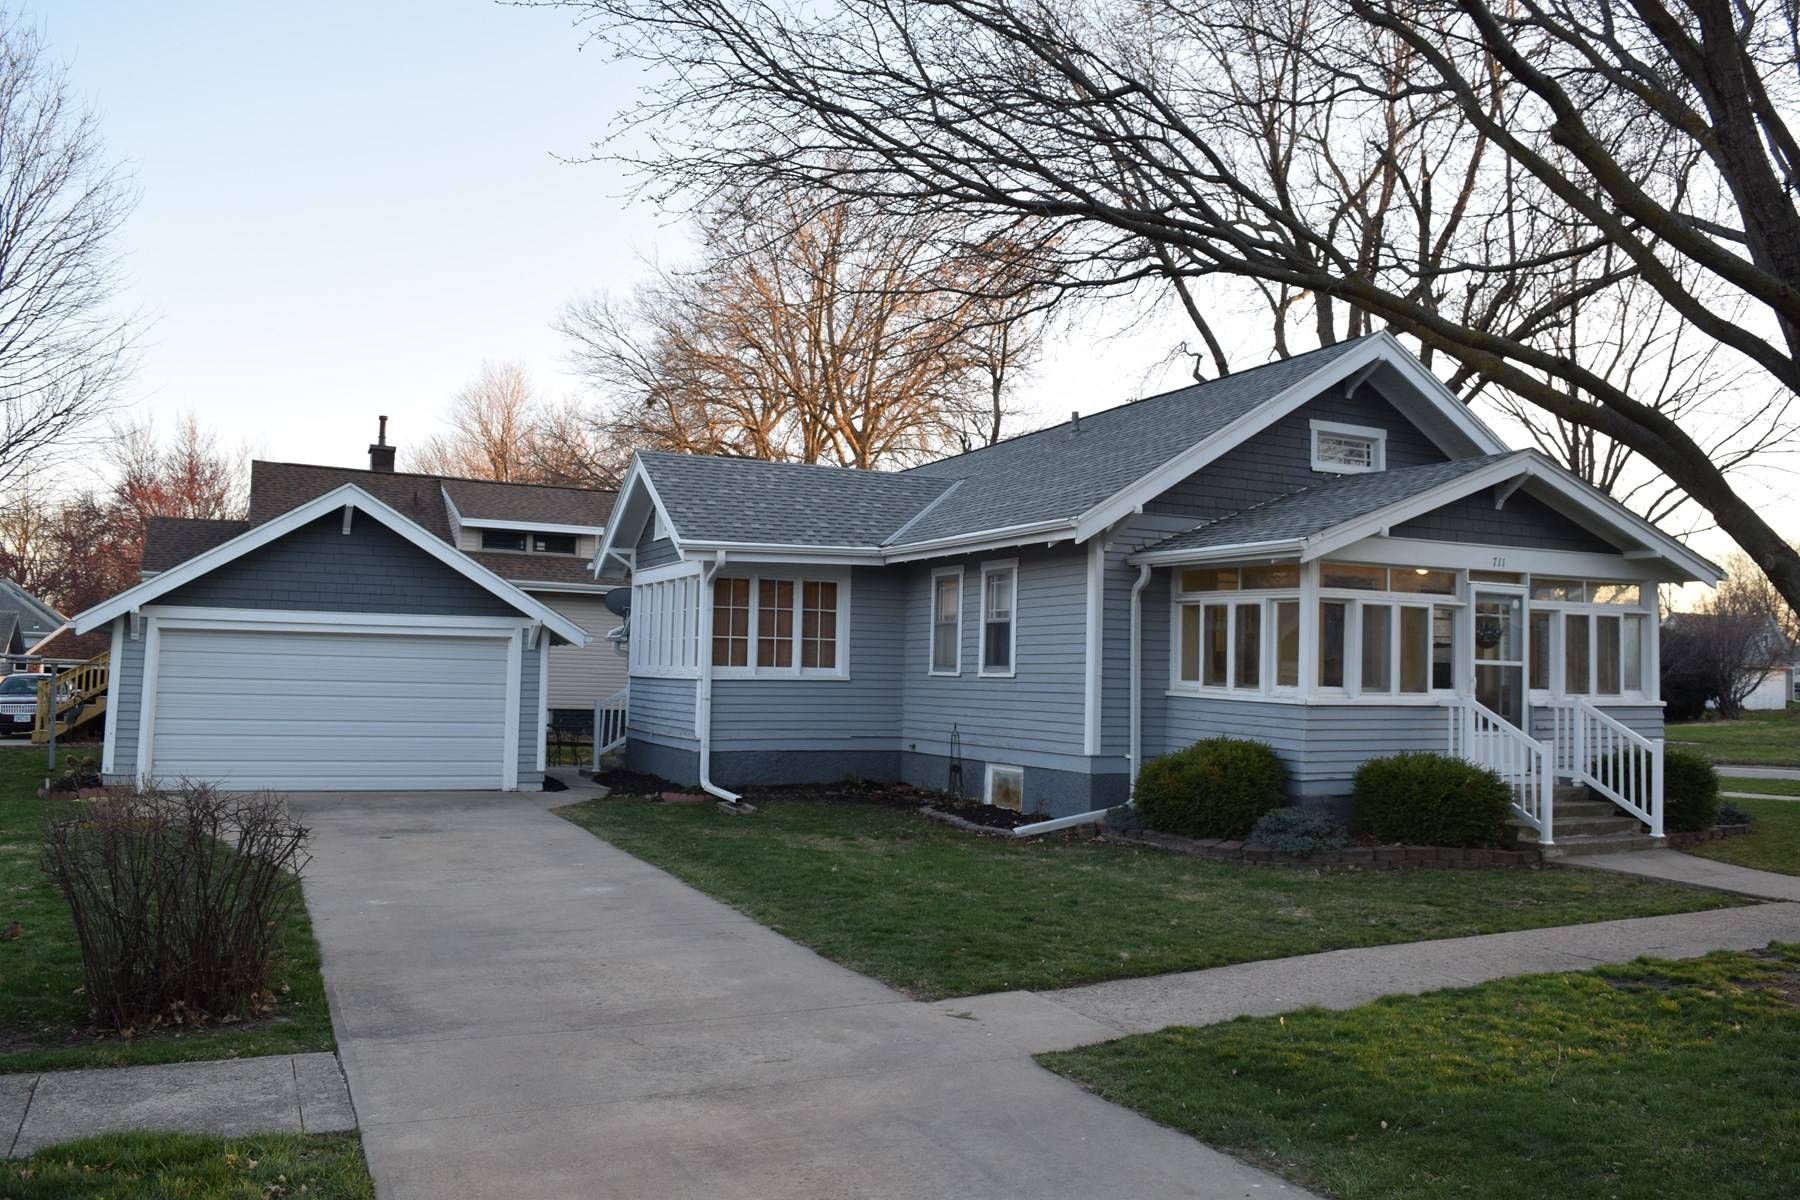 3 BR Home For Sale  Harlan, IA, Shelby Co.